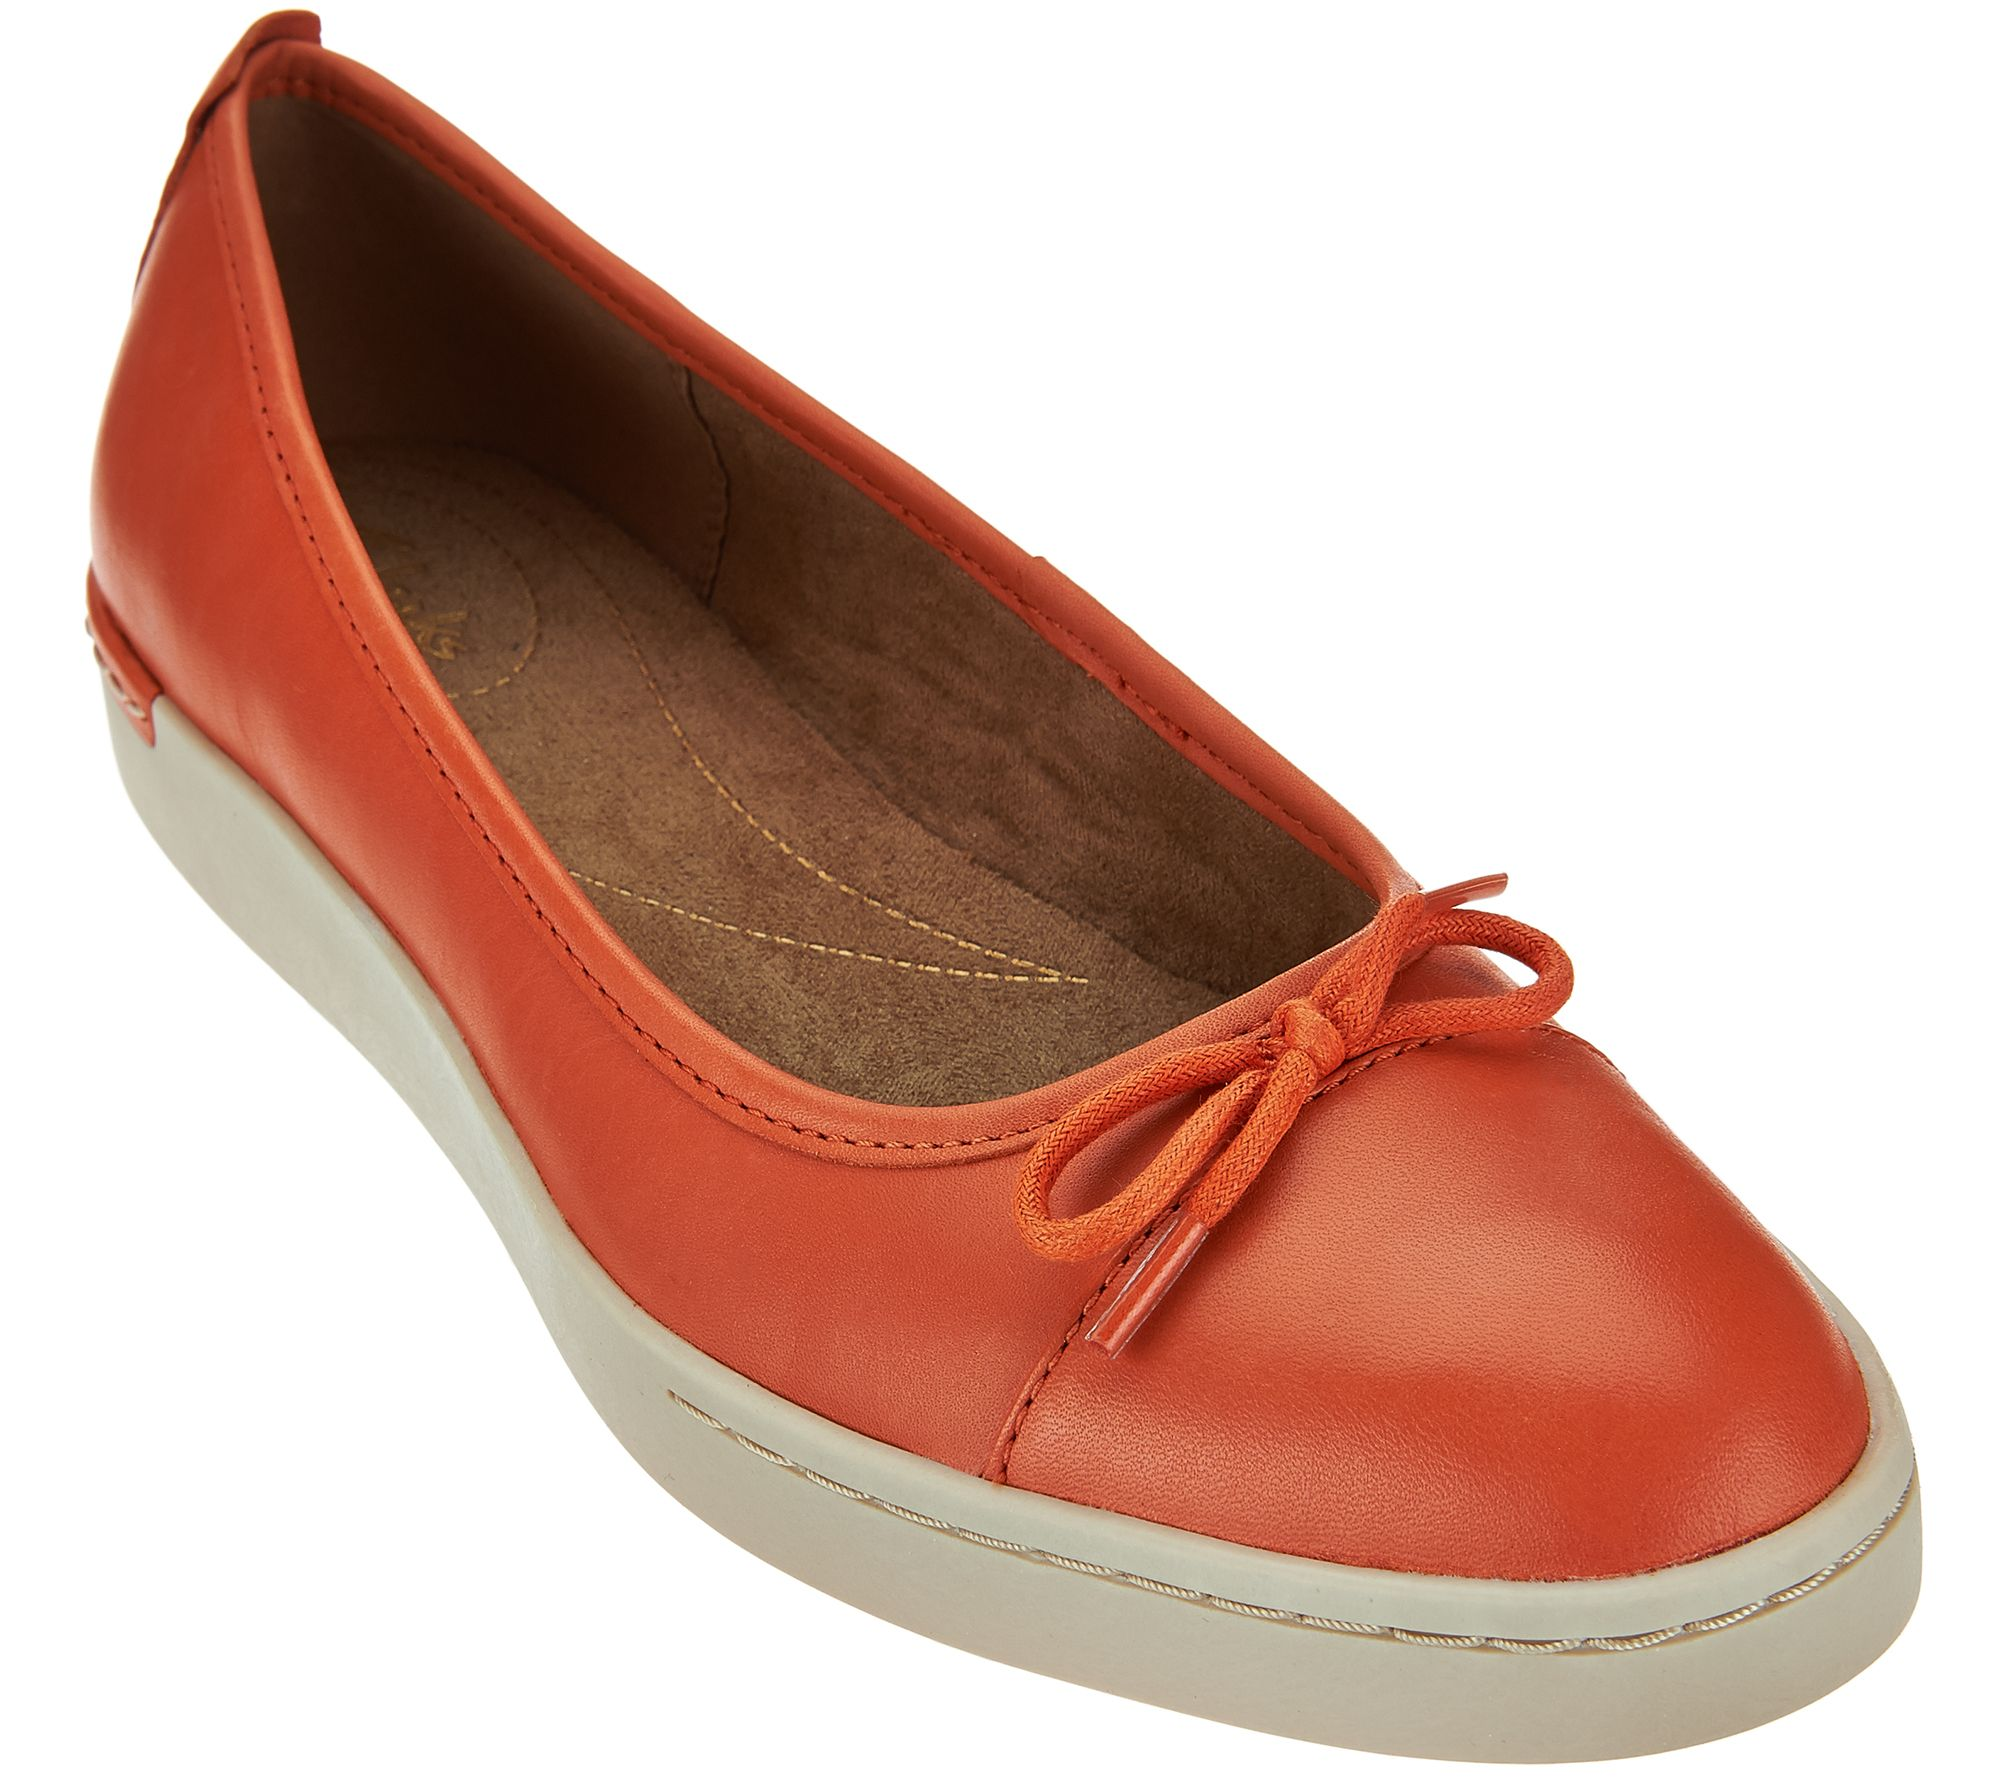 Clarks Artisan Leather Slip-ons with Bow Accent - Cordella Alto - Page 1 —  QVC.com